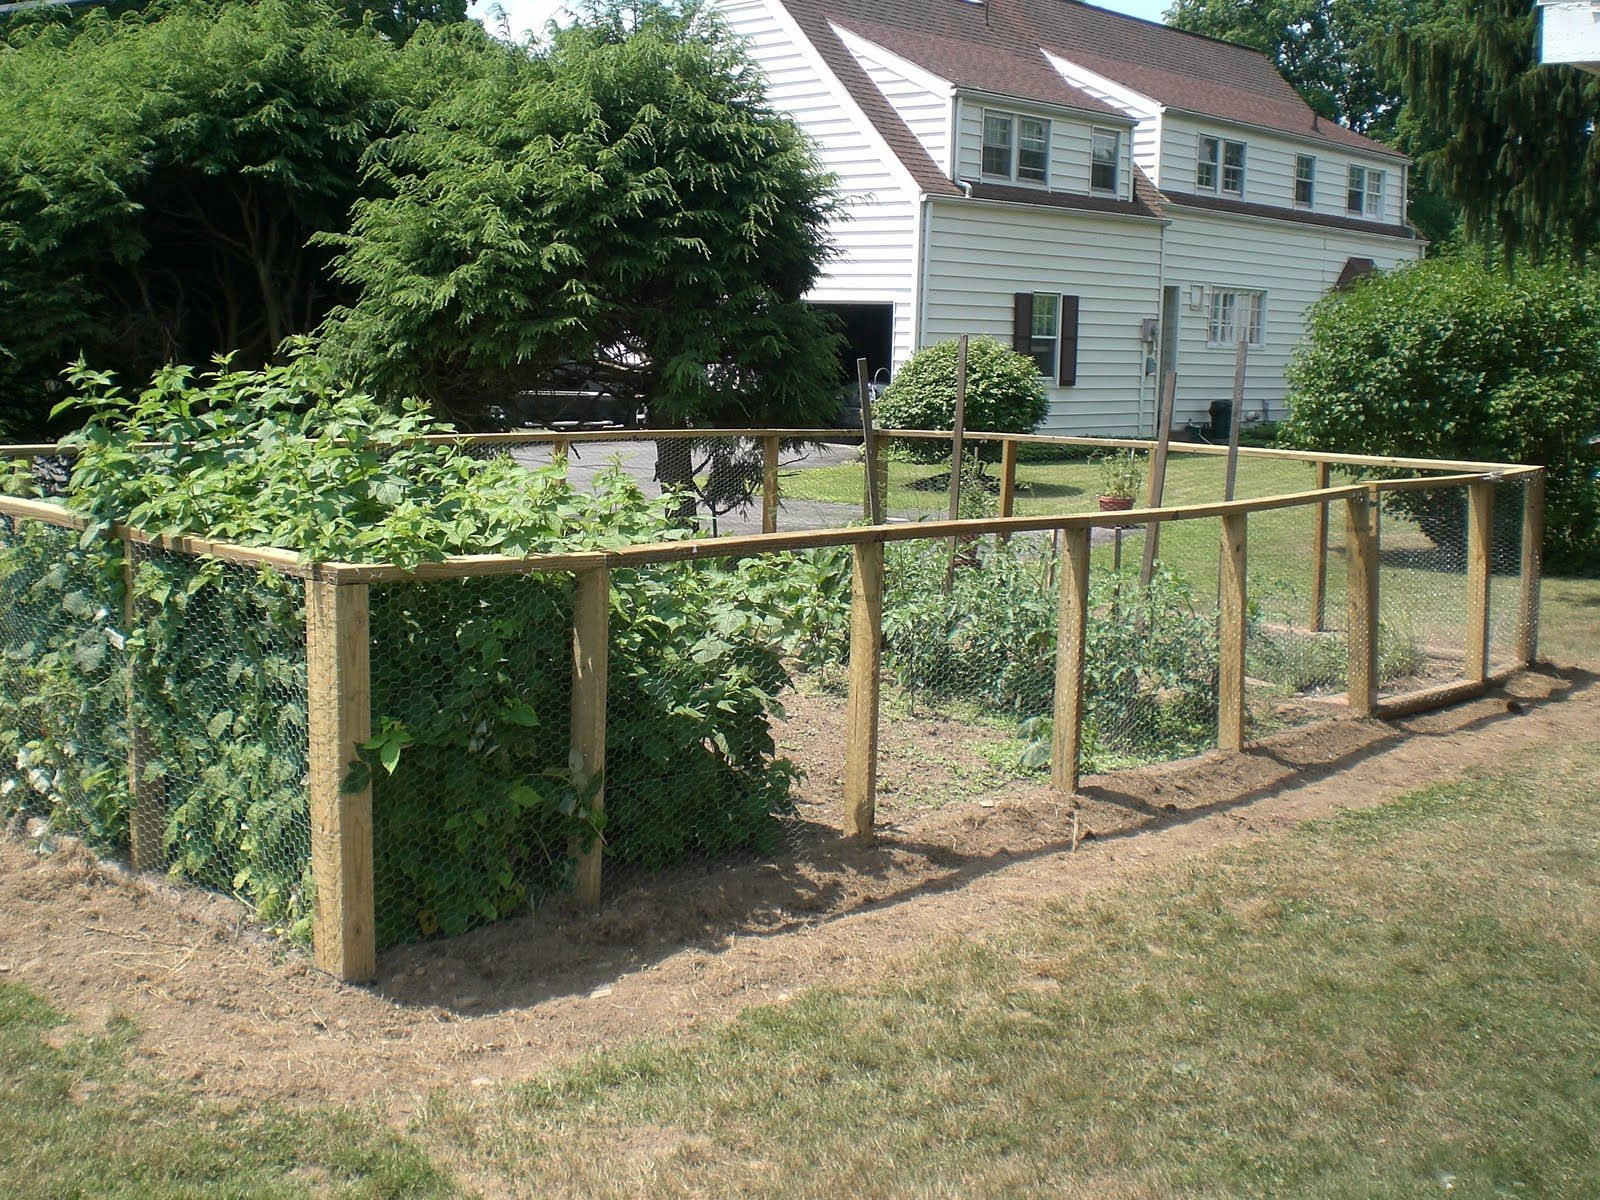 Veggie Garden Fence Around Chicken Coop To Keep Dogs